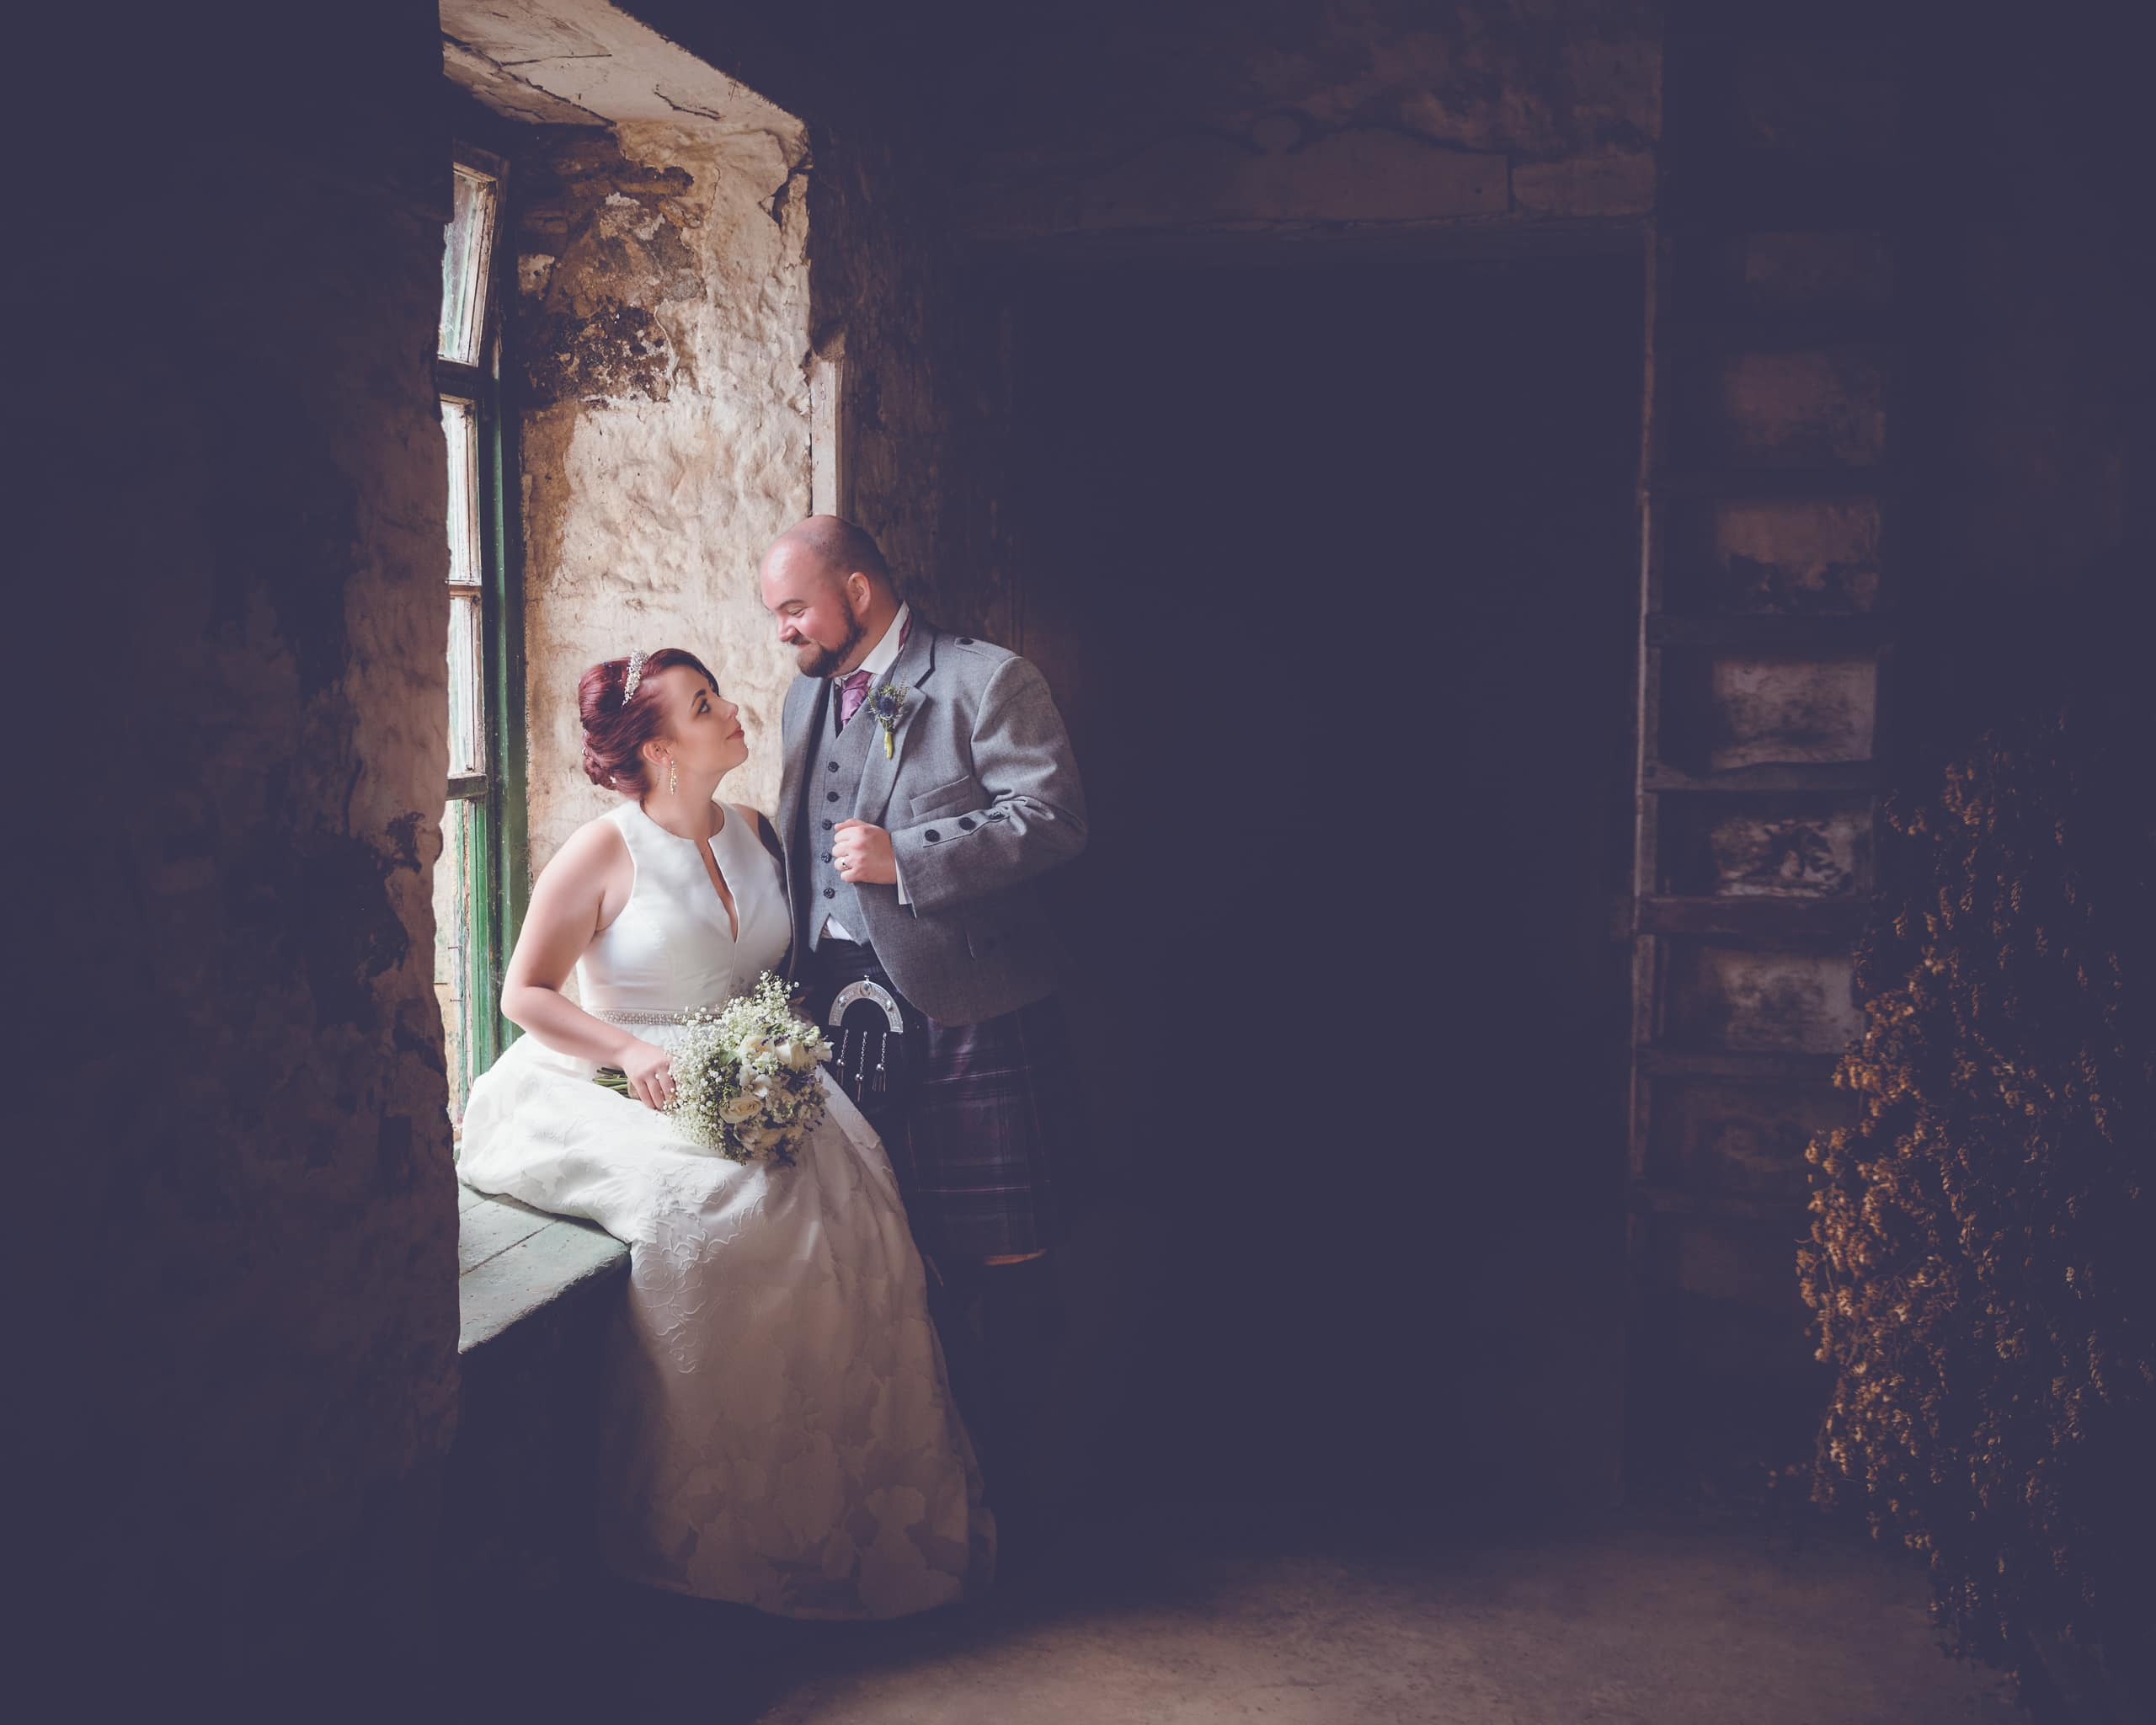 Artistic portrait of a bride and groom in a barn